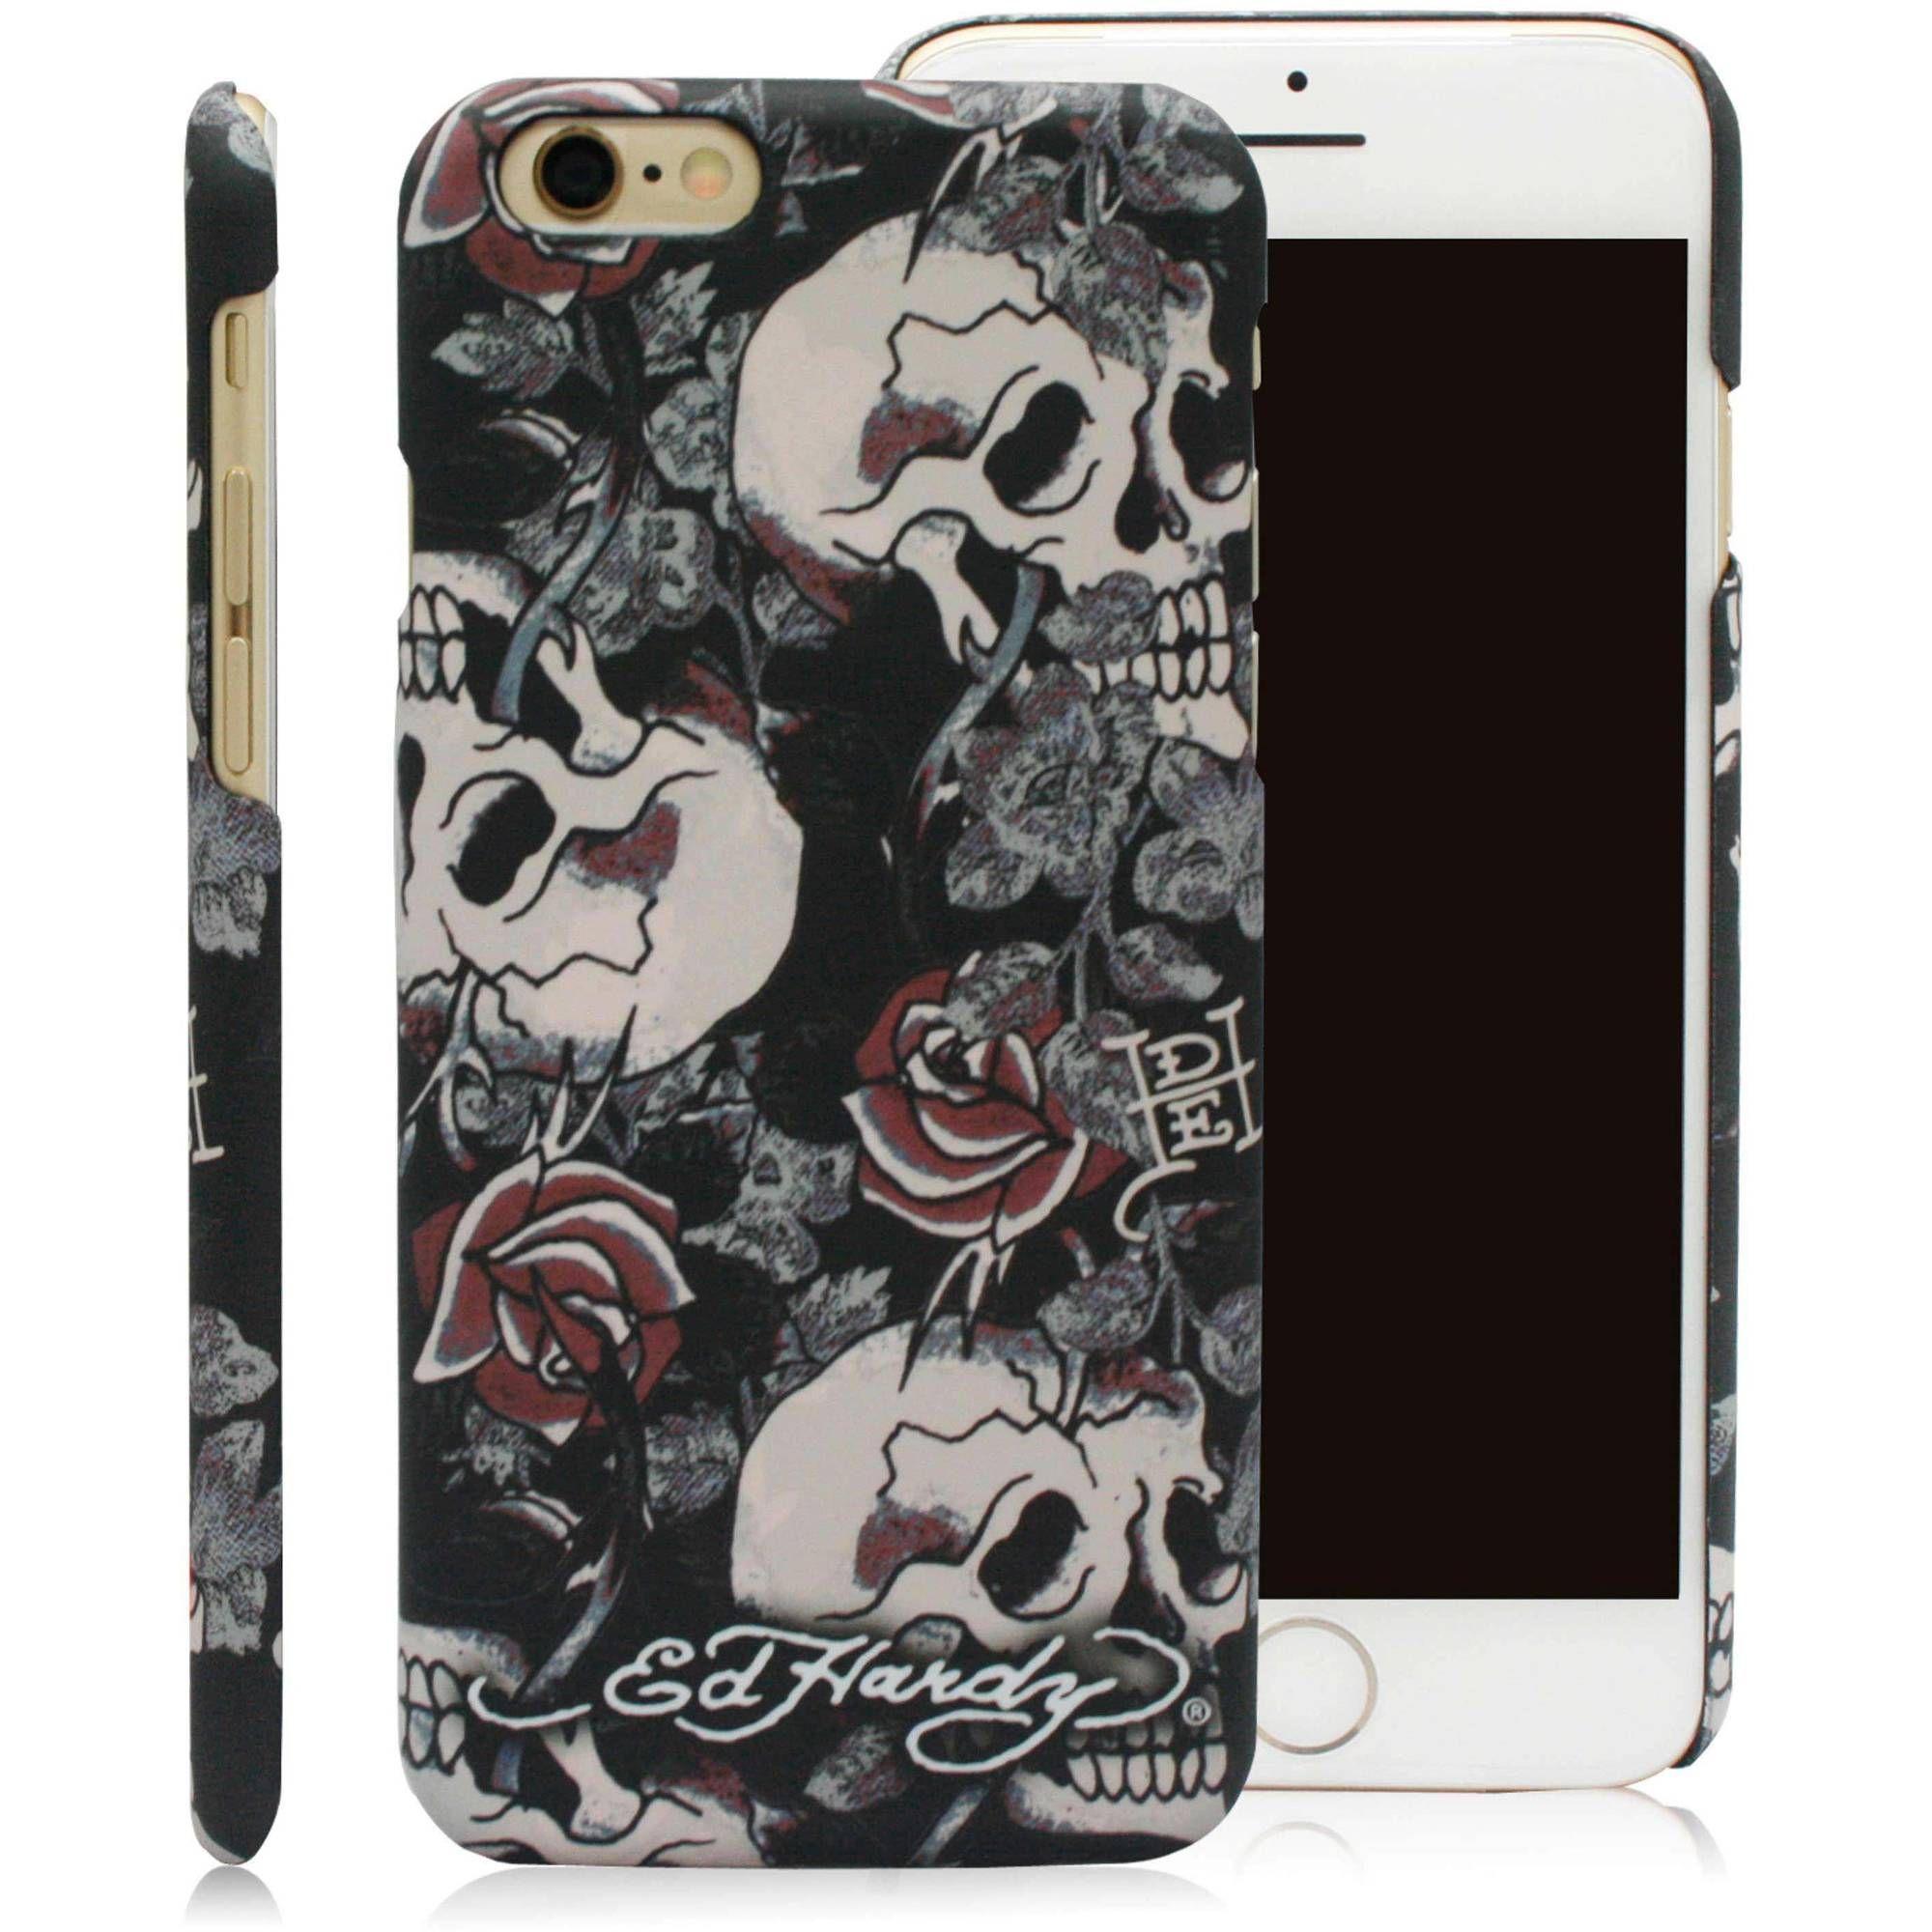 Choicee x Ed Hardy Apple iPhone 6 Plus Case